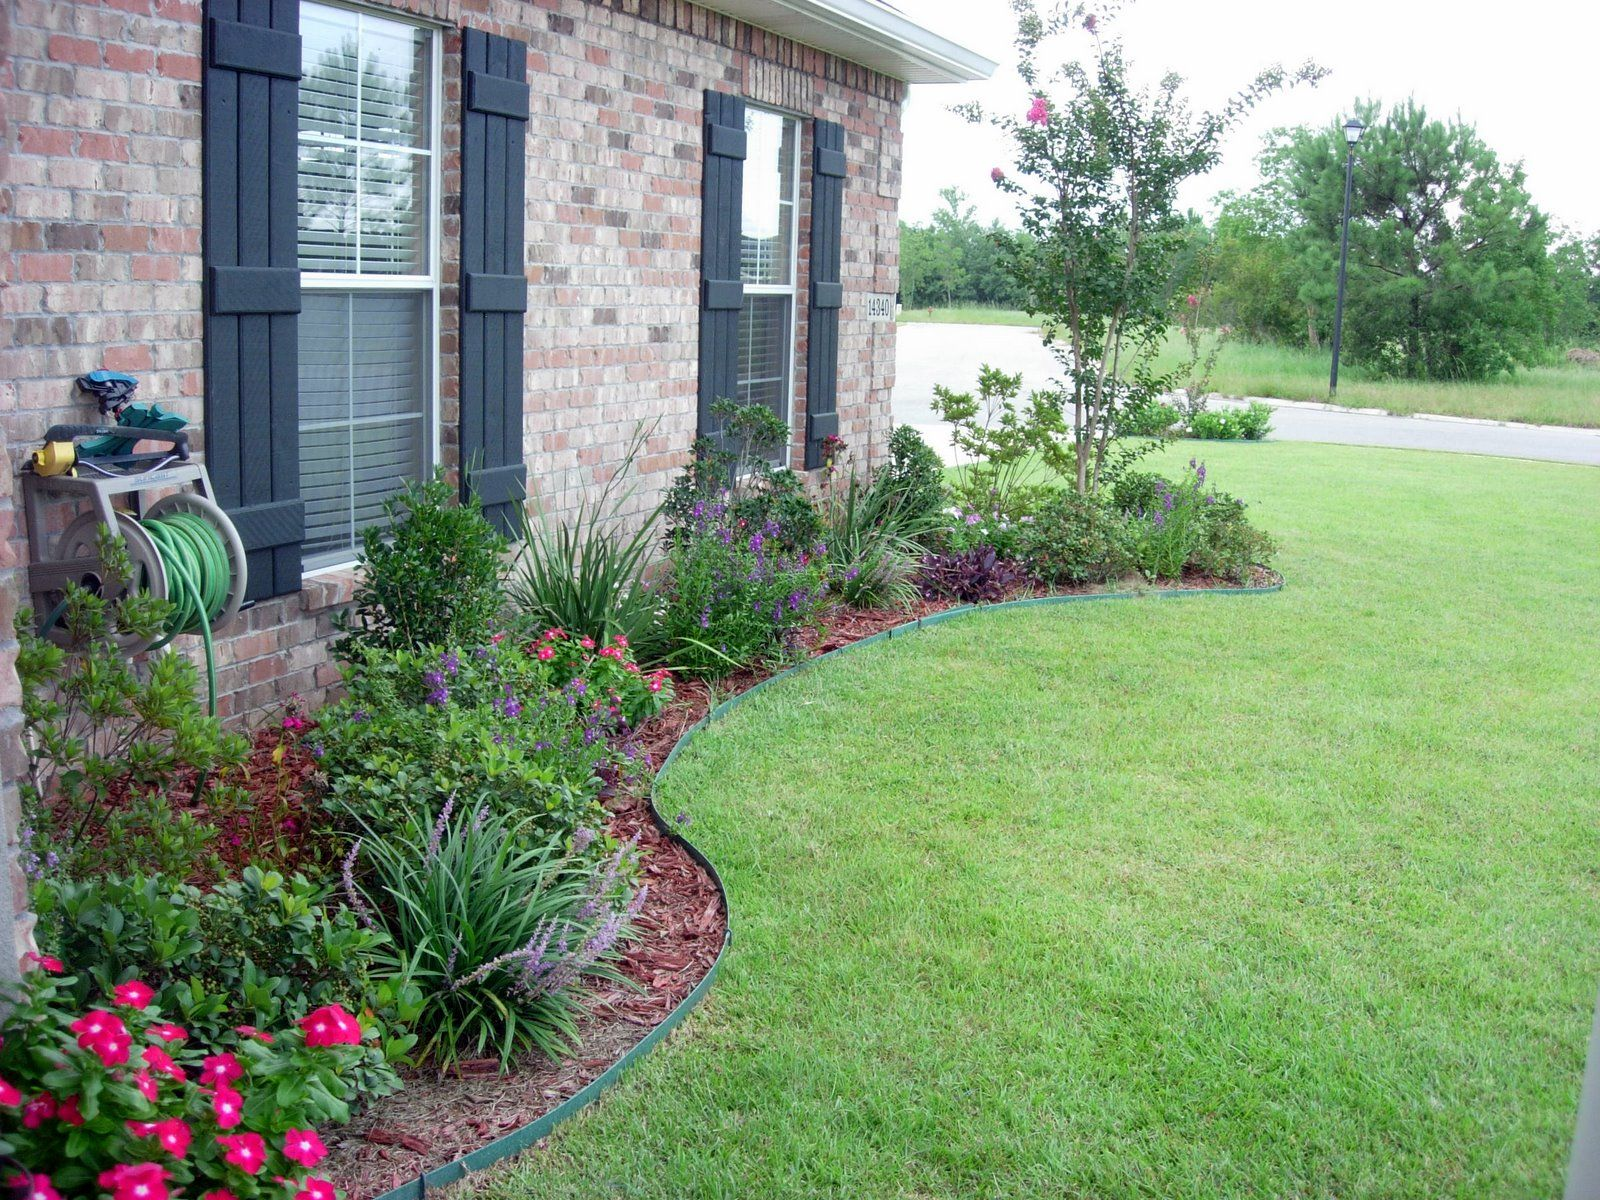 Small Garden Bed Ideas Of Flower Bed Designs For Front Of House Use Shrubs Small